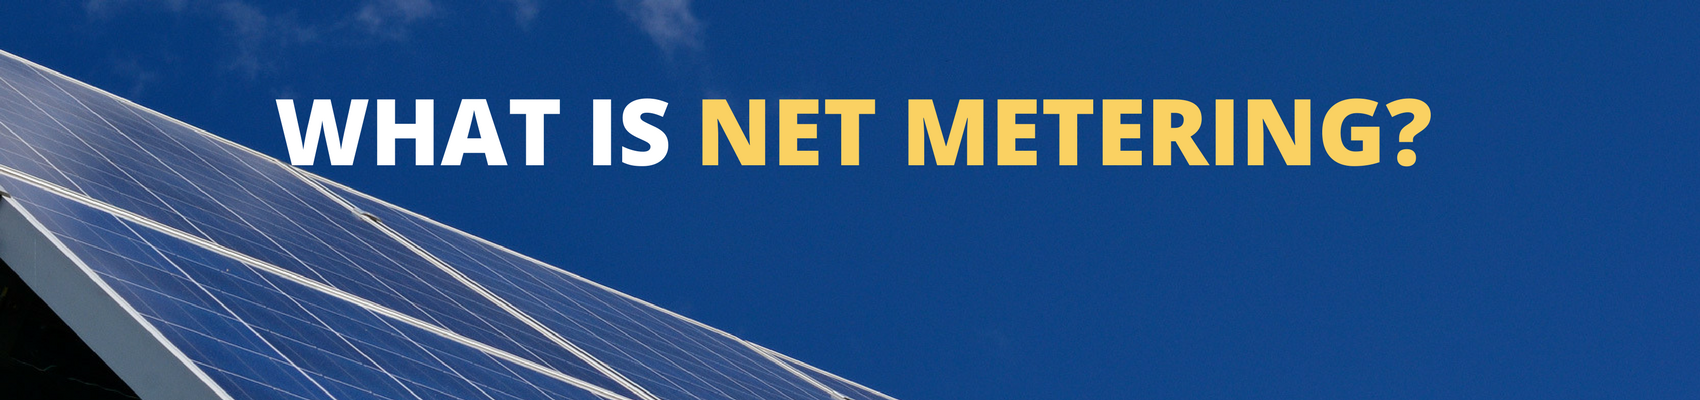 what-is-net-metering